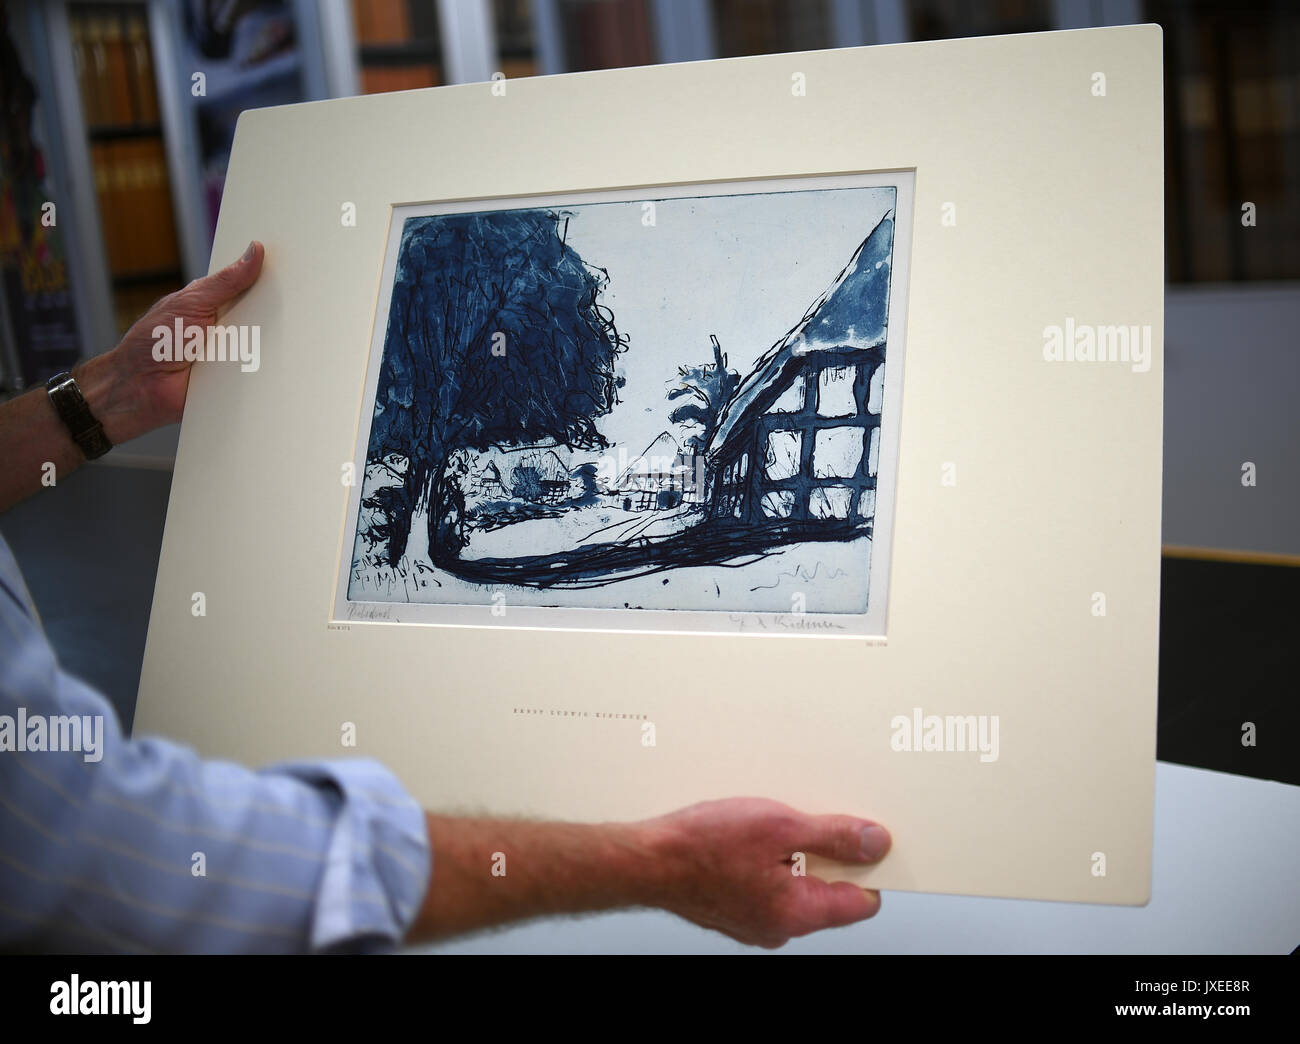 Berlin, Germany. 15th Aug, 2017. The deputy director of the Kupferstichkabinett Berlin (Museum of Prints and Drawings), Holm Bevers, holds the etching 'Fehmarnhäuser mit großem Baum' (1908) (lit. Fehmarn houses with big tree) by artist Ernst Ludwig Kirchner in his hands in Berlin, Germany, 15 August 2017. Now, the Prussian Cultural Heritage Foundation bought back the blue test print of an etching after the return to the heirs of the Jewish collector Eugen Moritz Buchtal. Photo: Britta Pedersen/dpa-Zentralbild/dpa/Alamy Live News - Stock Image